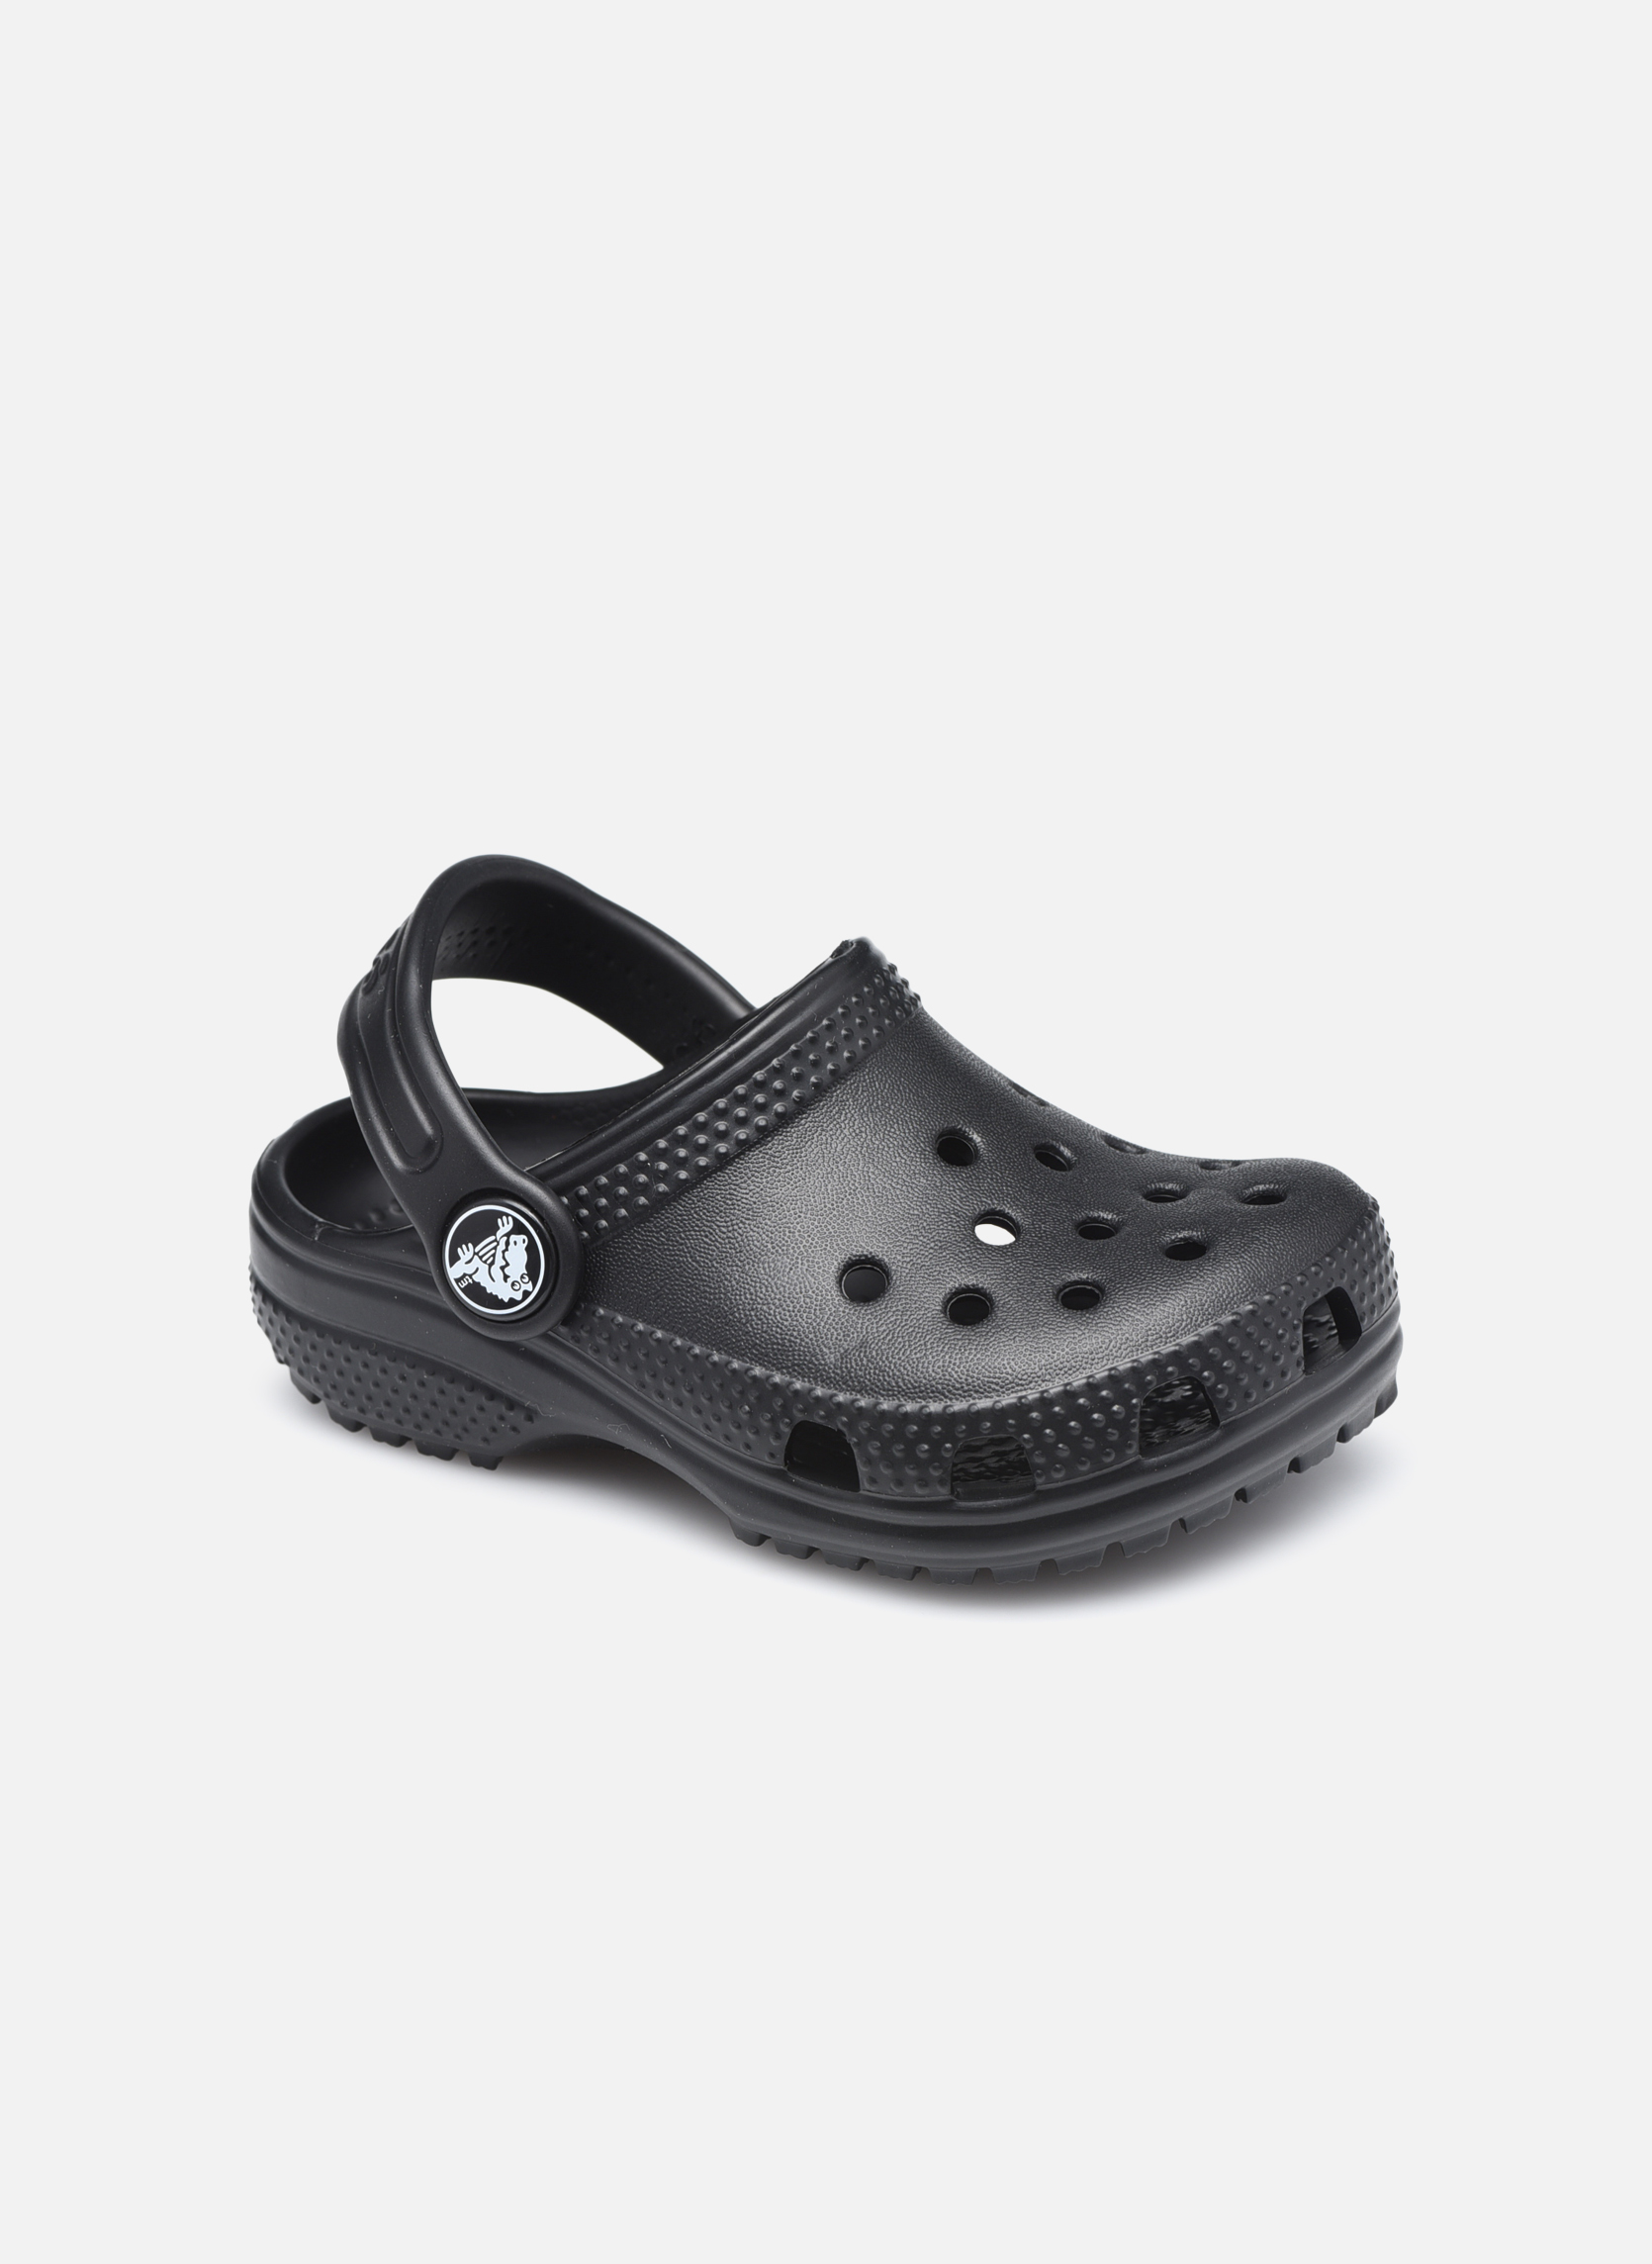 Crocs Kids Cayman